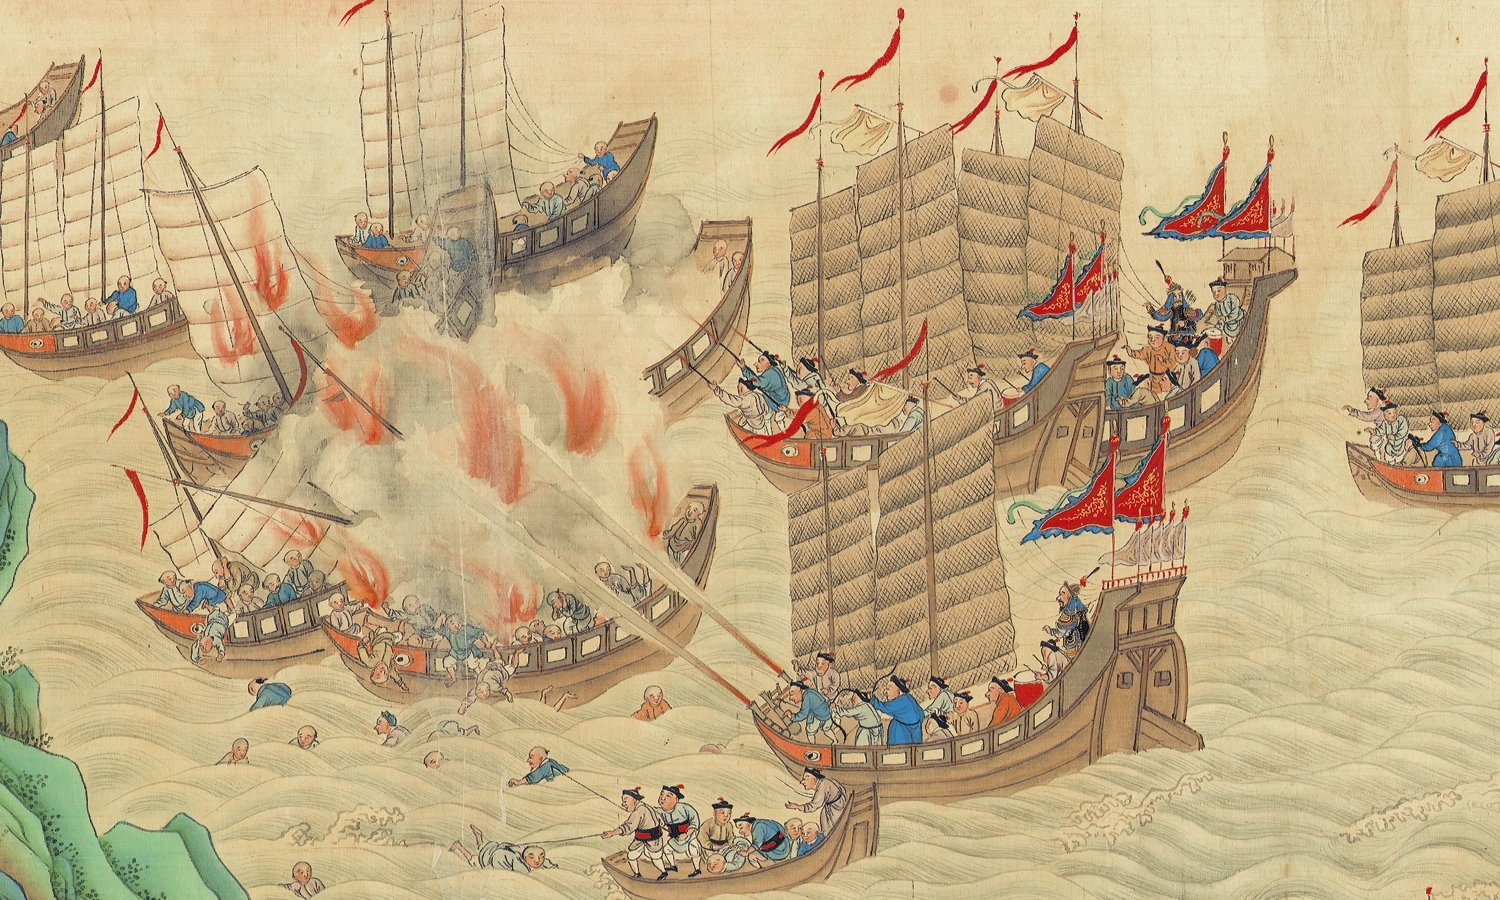 Portion of a Qing scroll on battling 19th Century piracy in the South China Sea